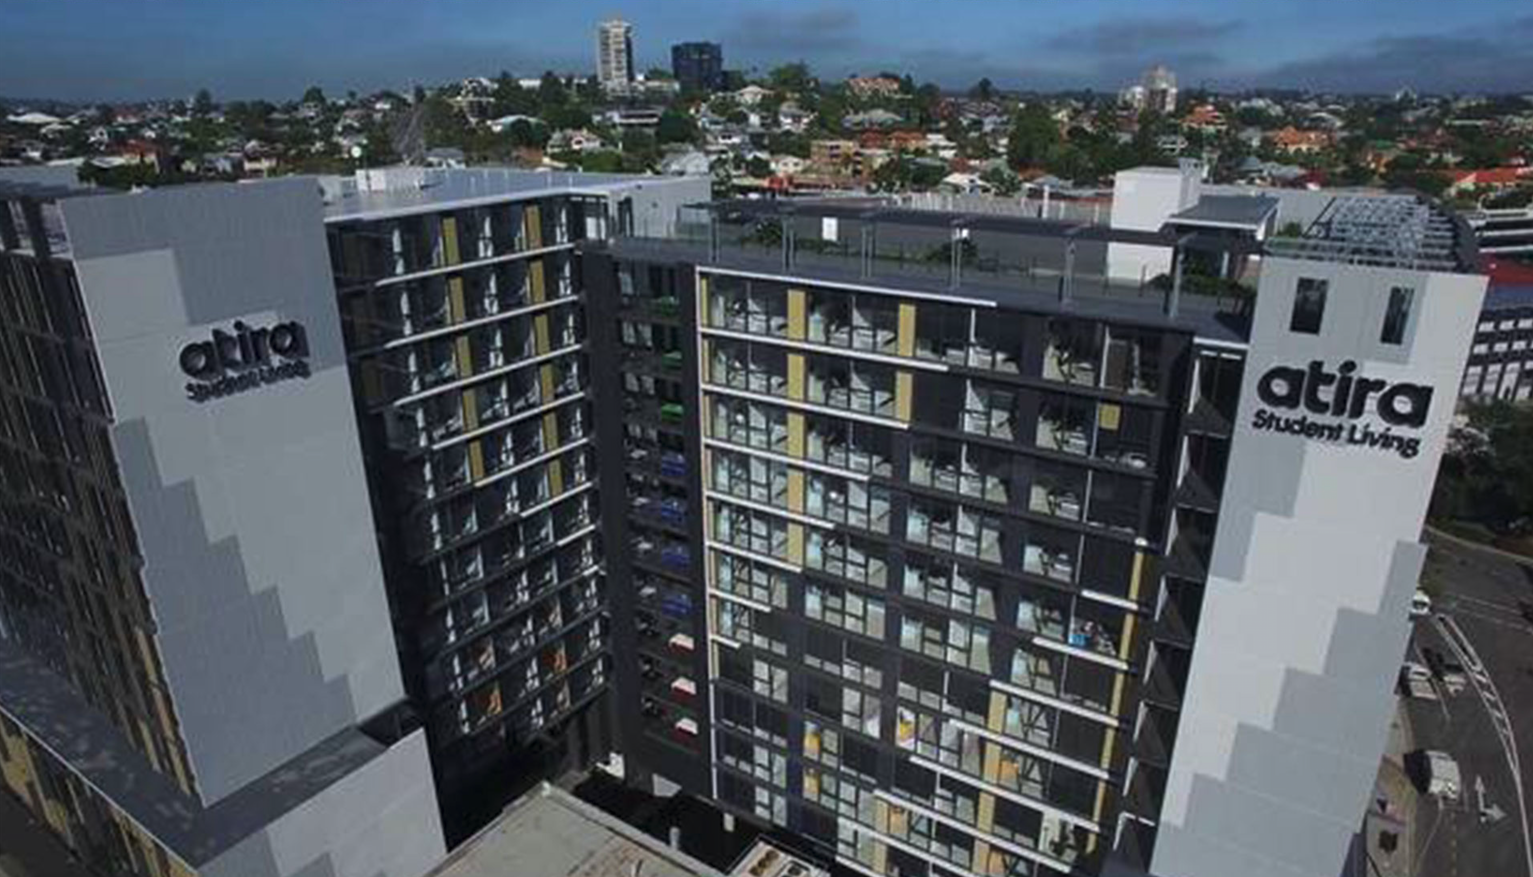 Purpose Built Student Accommodation (PBSA) have begun to thrive in the past 5-10 years in Australia.